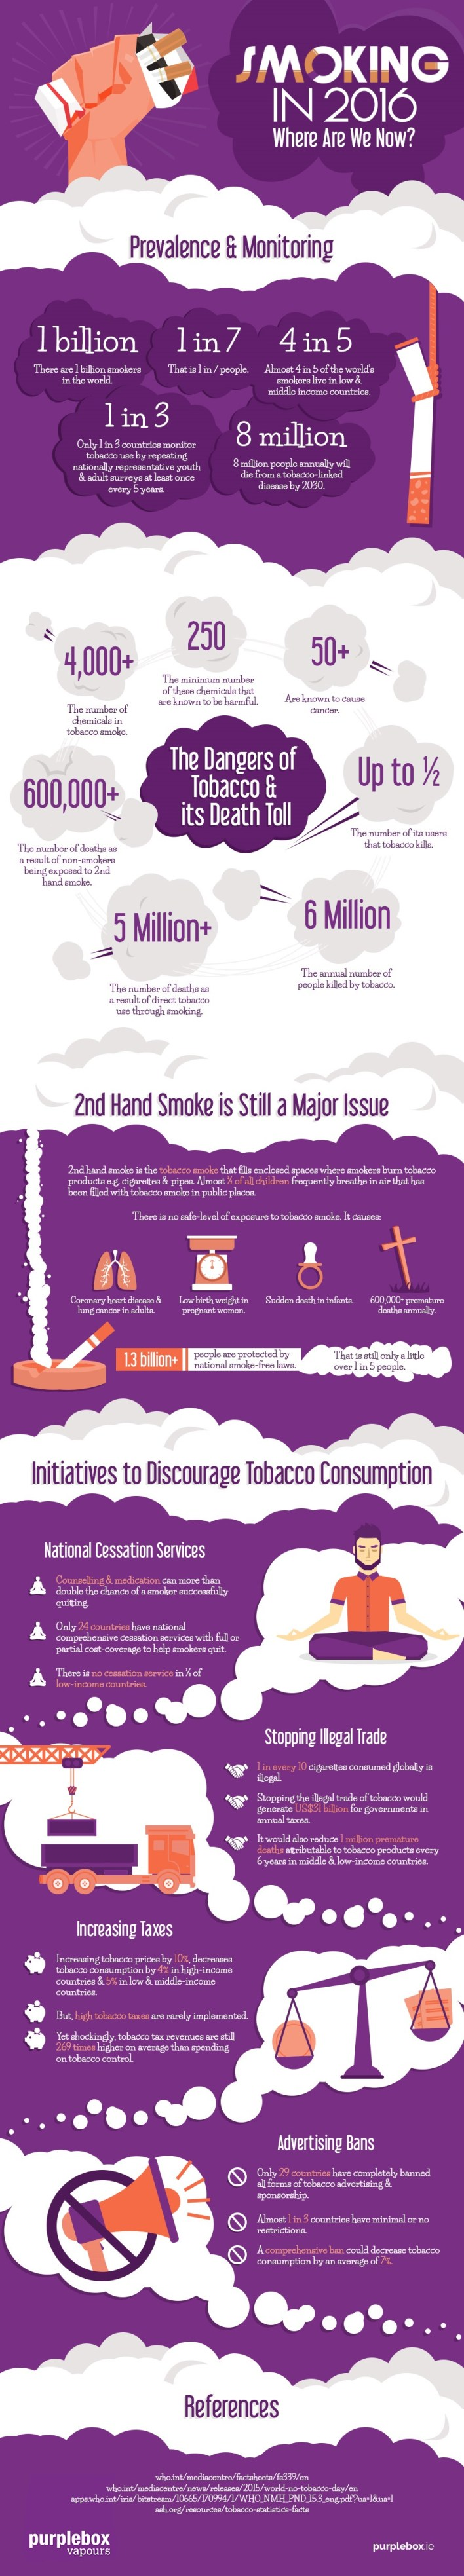 Smoking in 2016 Infographic